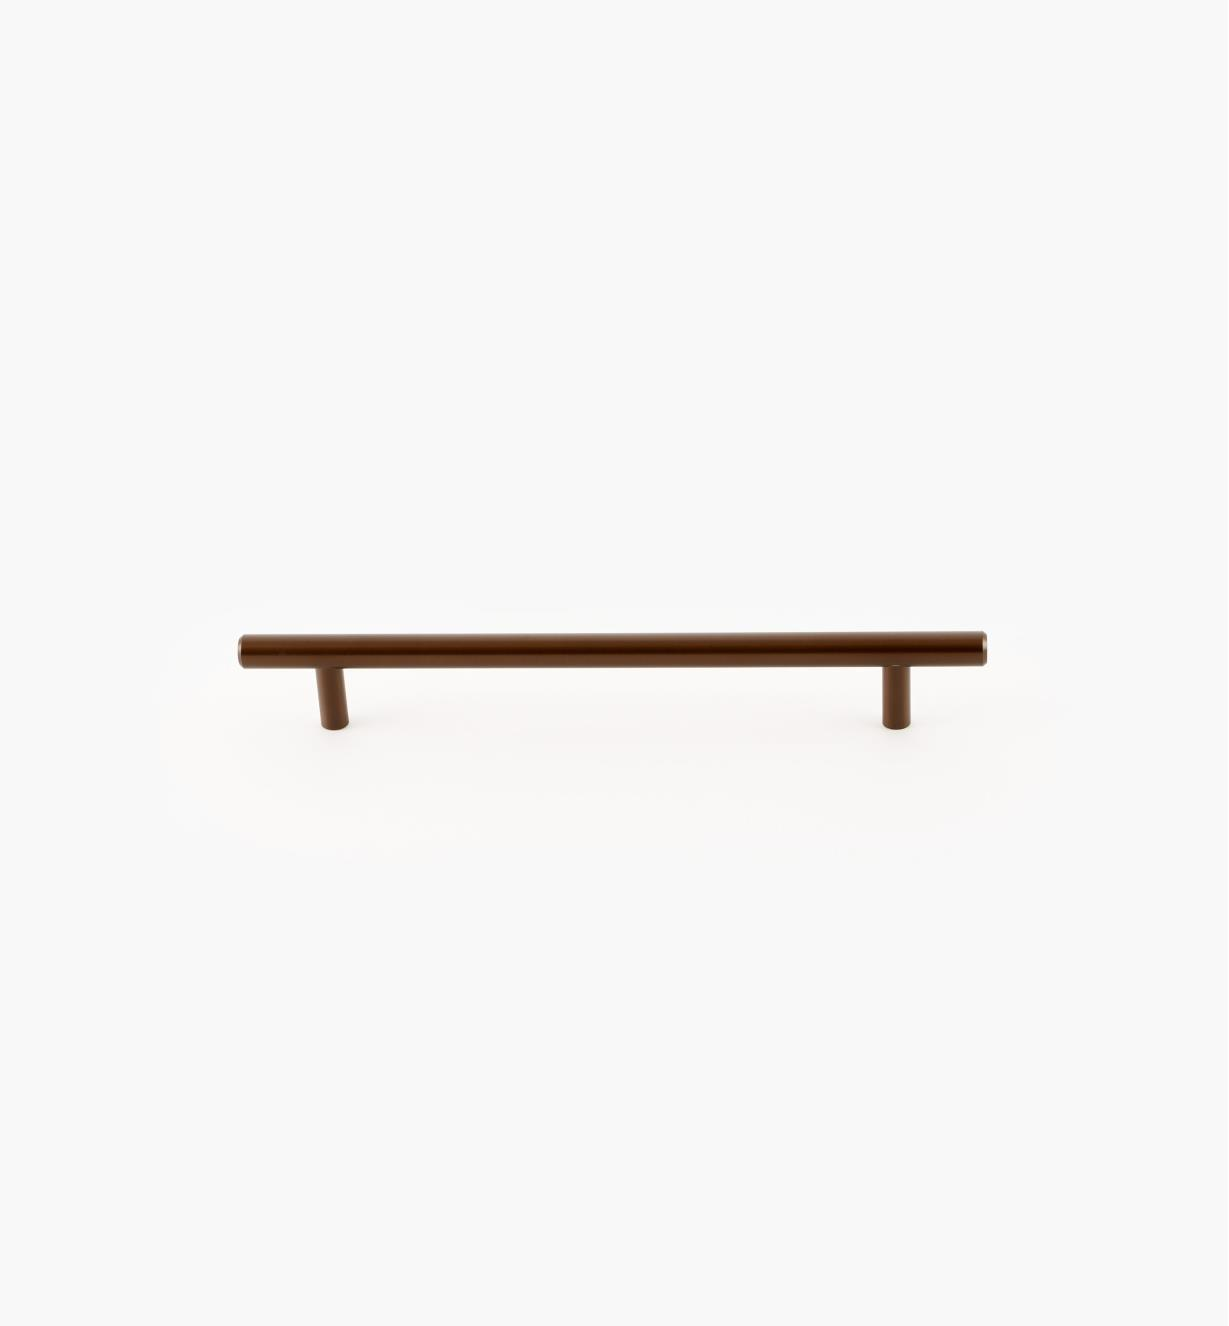 02A1478 - Bar Caramel Bronze 192mm (252mm) Pull, each